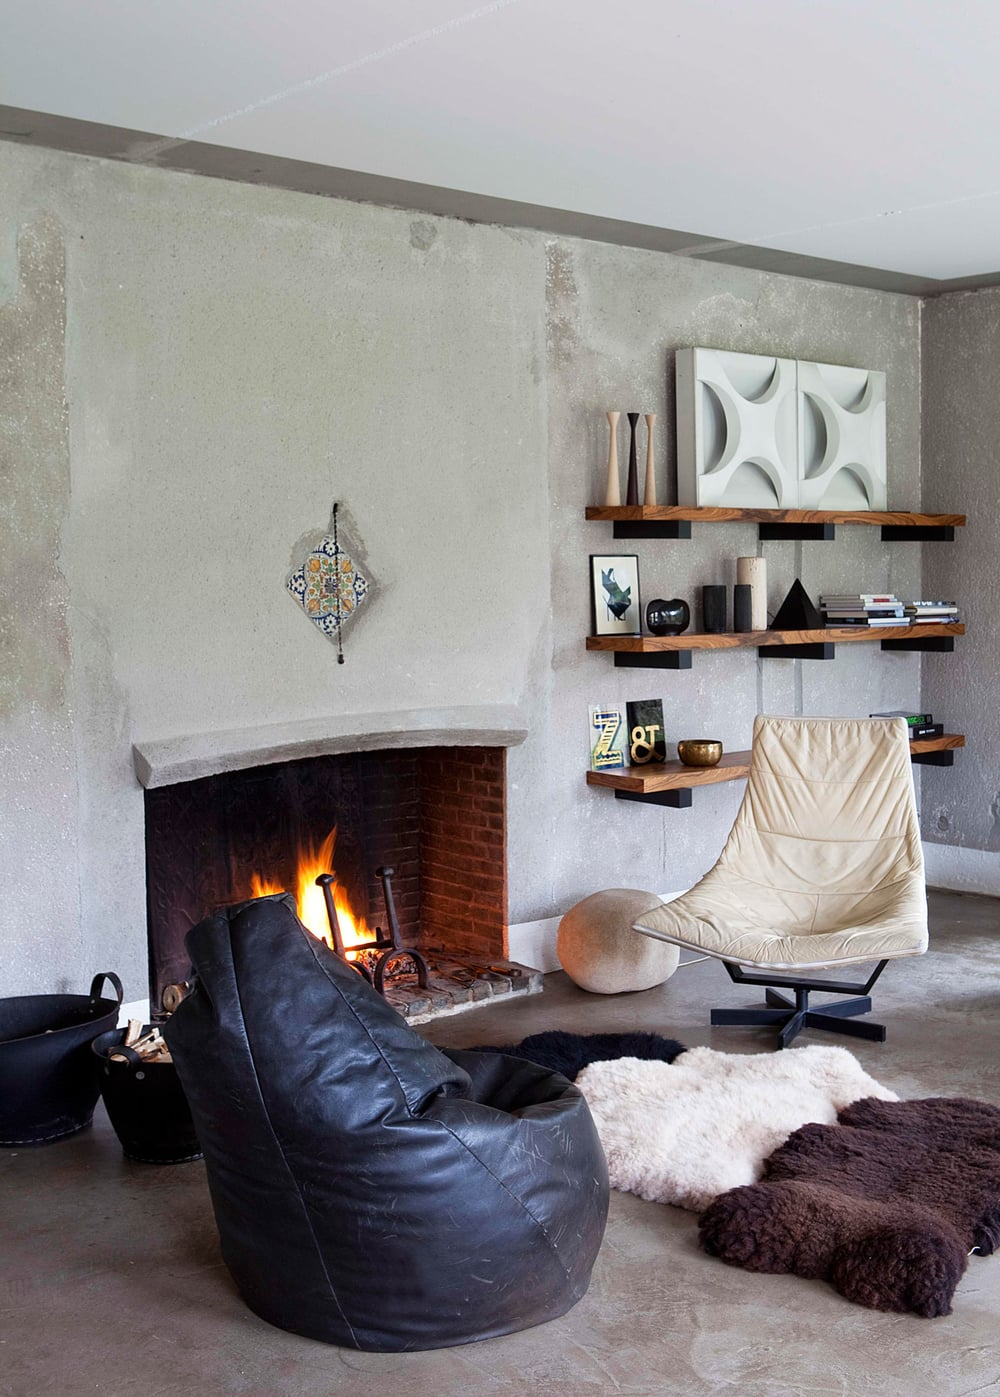 Oracle, Fox, Sunday, Sanctuary, Extracurricular, Bea, Members, Hotel, Belgium, Industrial, Style, Interior, Designer, White, Concrete, Living Room, Black Leather Couch, Fireplace